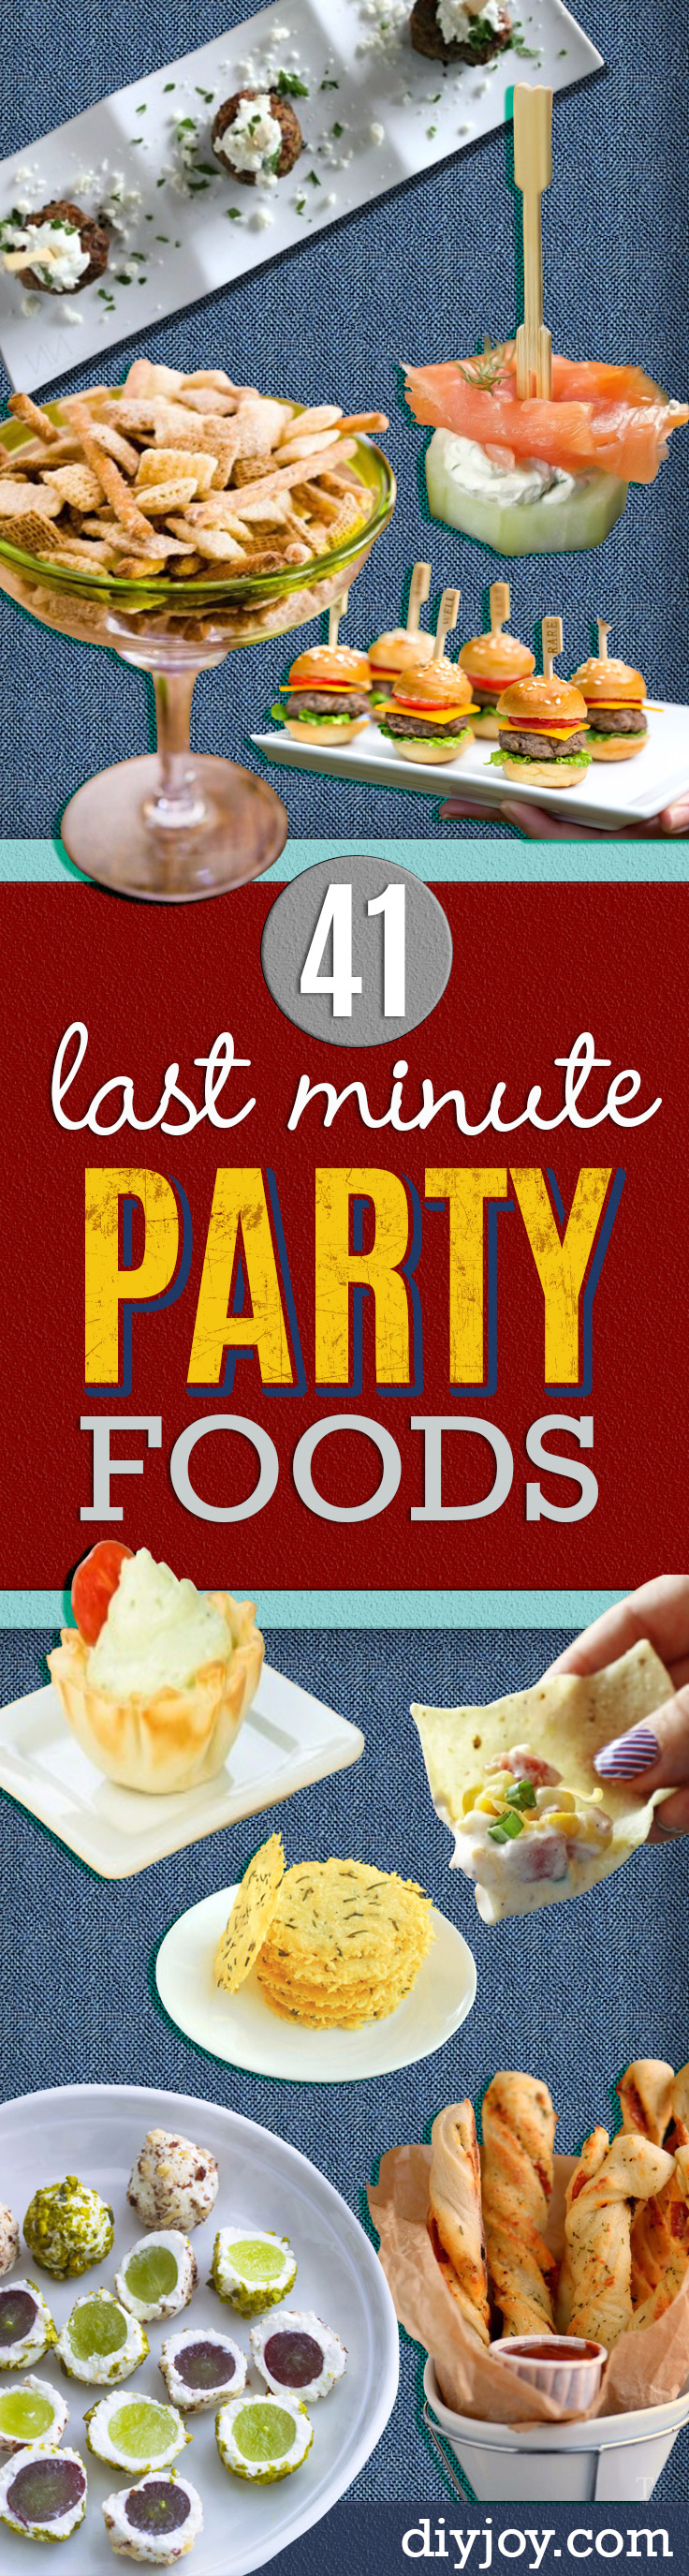 41 last minute party foods for Last minute party ideas